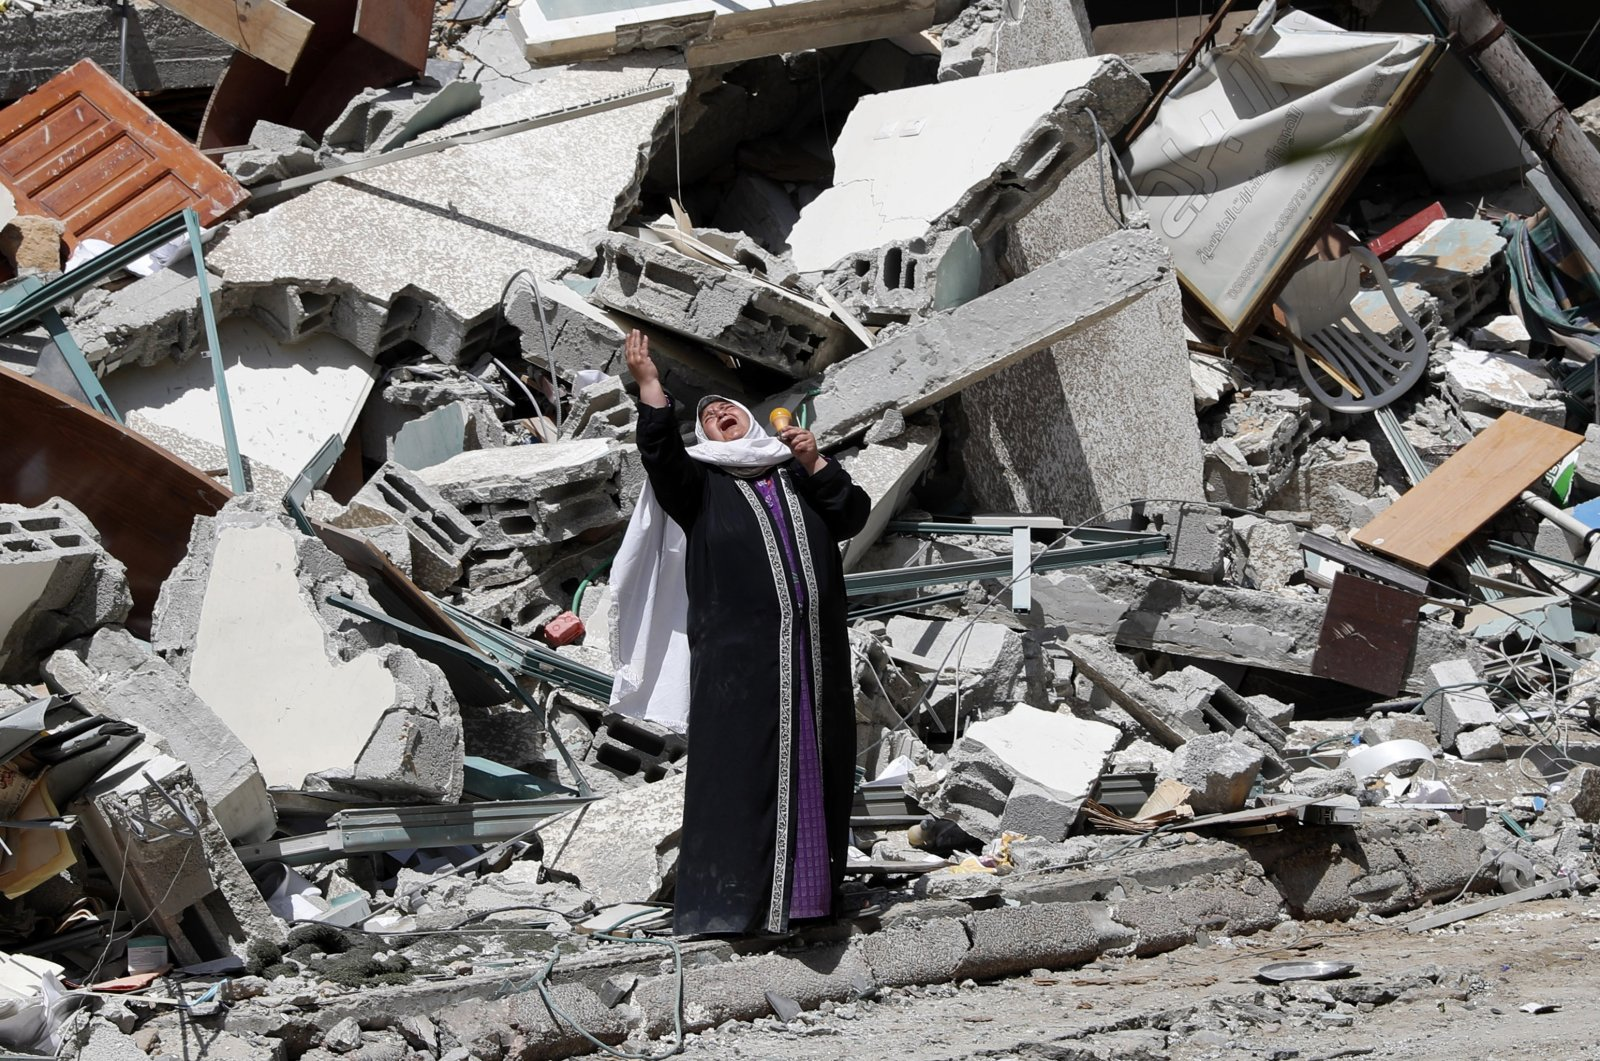 A woman reacts while standing near the rubble of a building that was destroyed by an Israeli airstrike in the Gaza Strip, Palestine, May 16, 2021. (AP Photo)